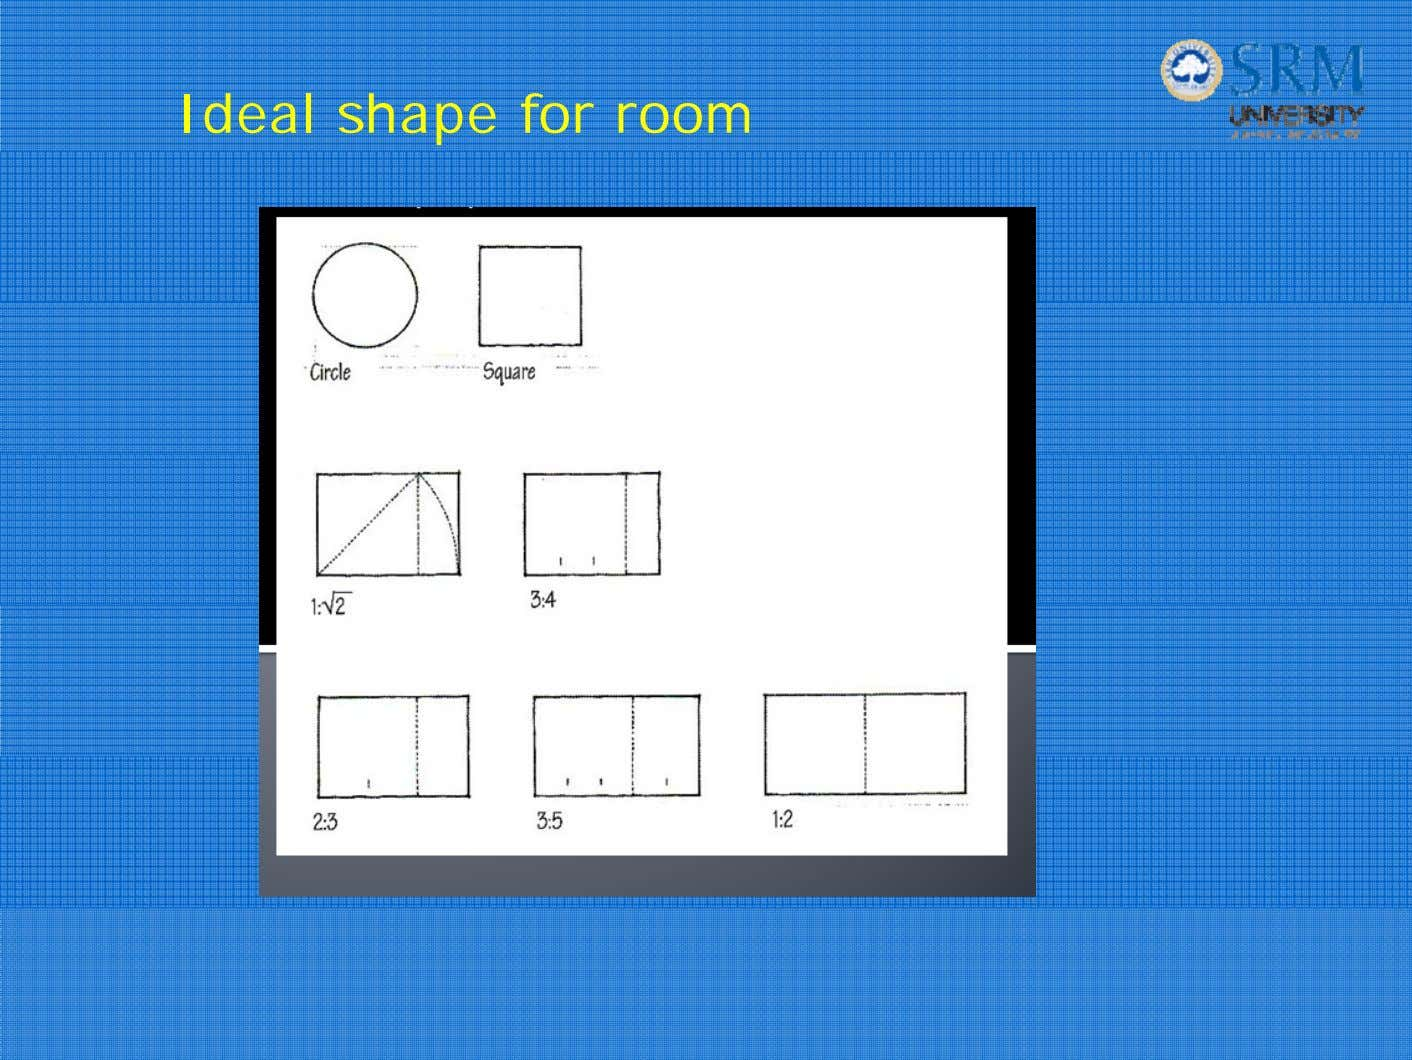 Ideal shape for room